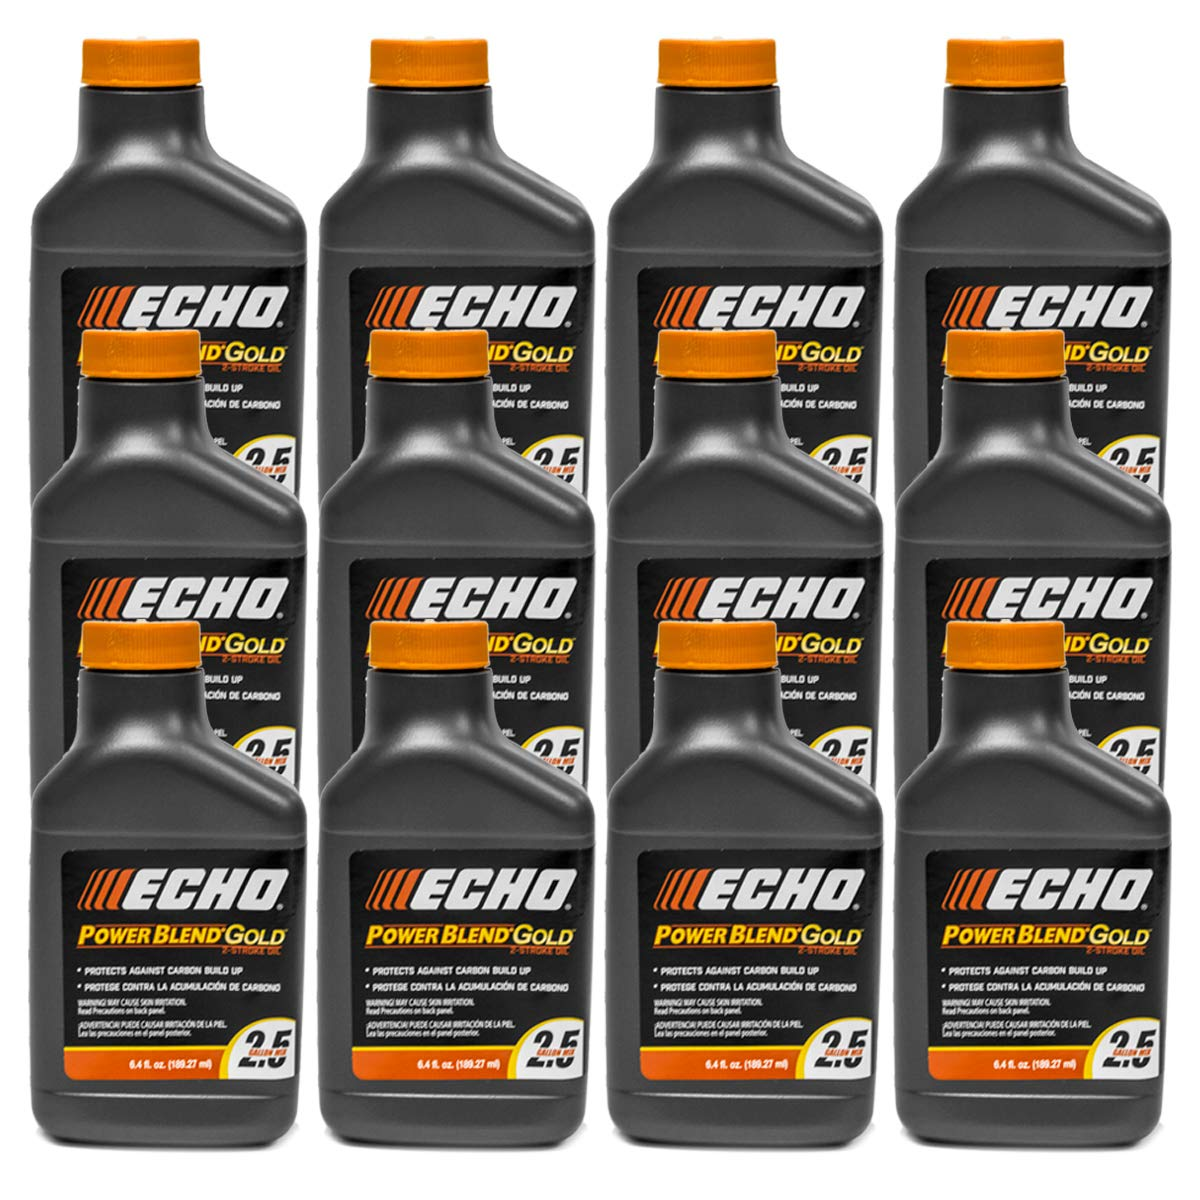 12PK Echo Oil 6.4 oz Bottles 2 Cycle Mix for 2.5 Gallon - Power Blend 6450025 by Replaces Echo